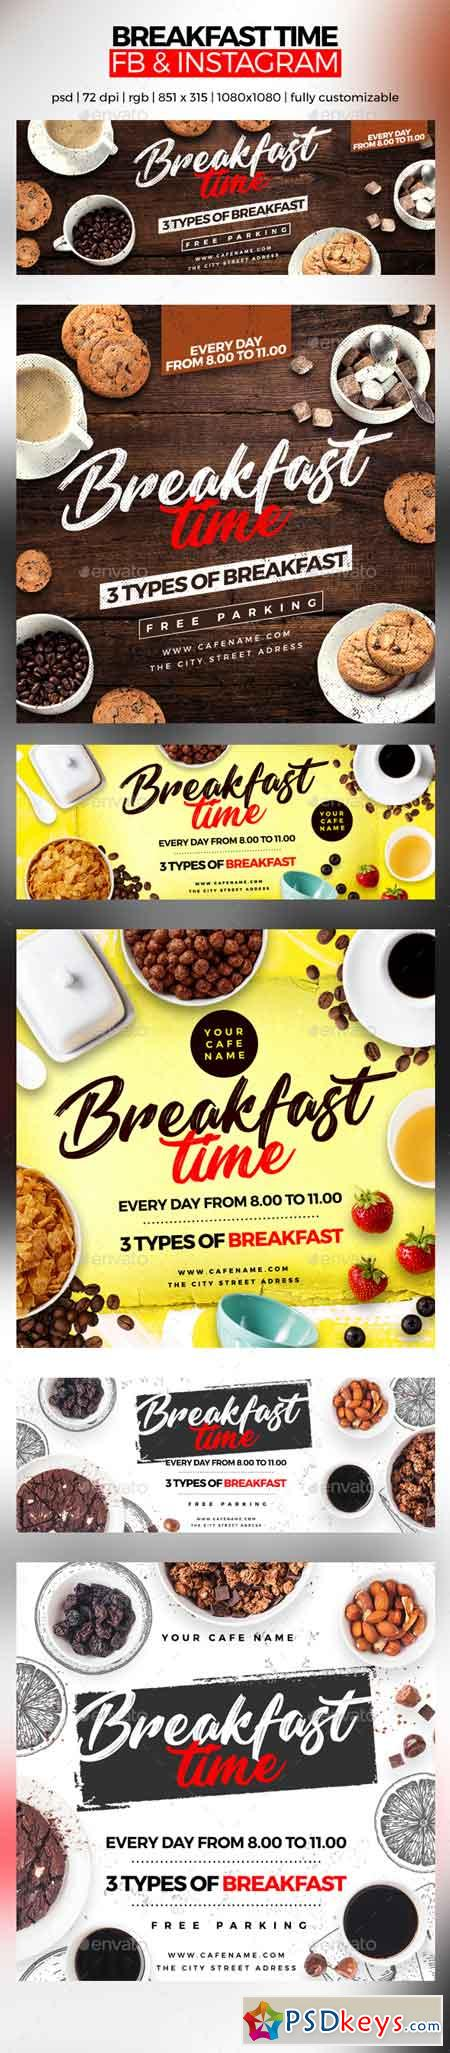 Breakfast Time Facebook Cover and Instagram 22672687